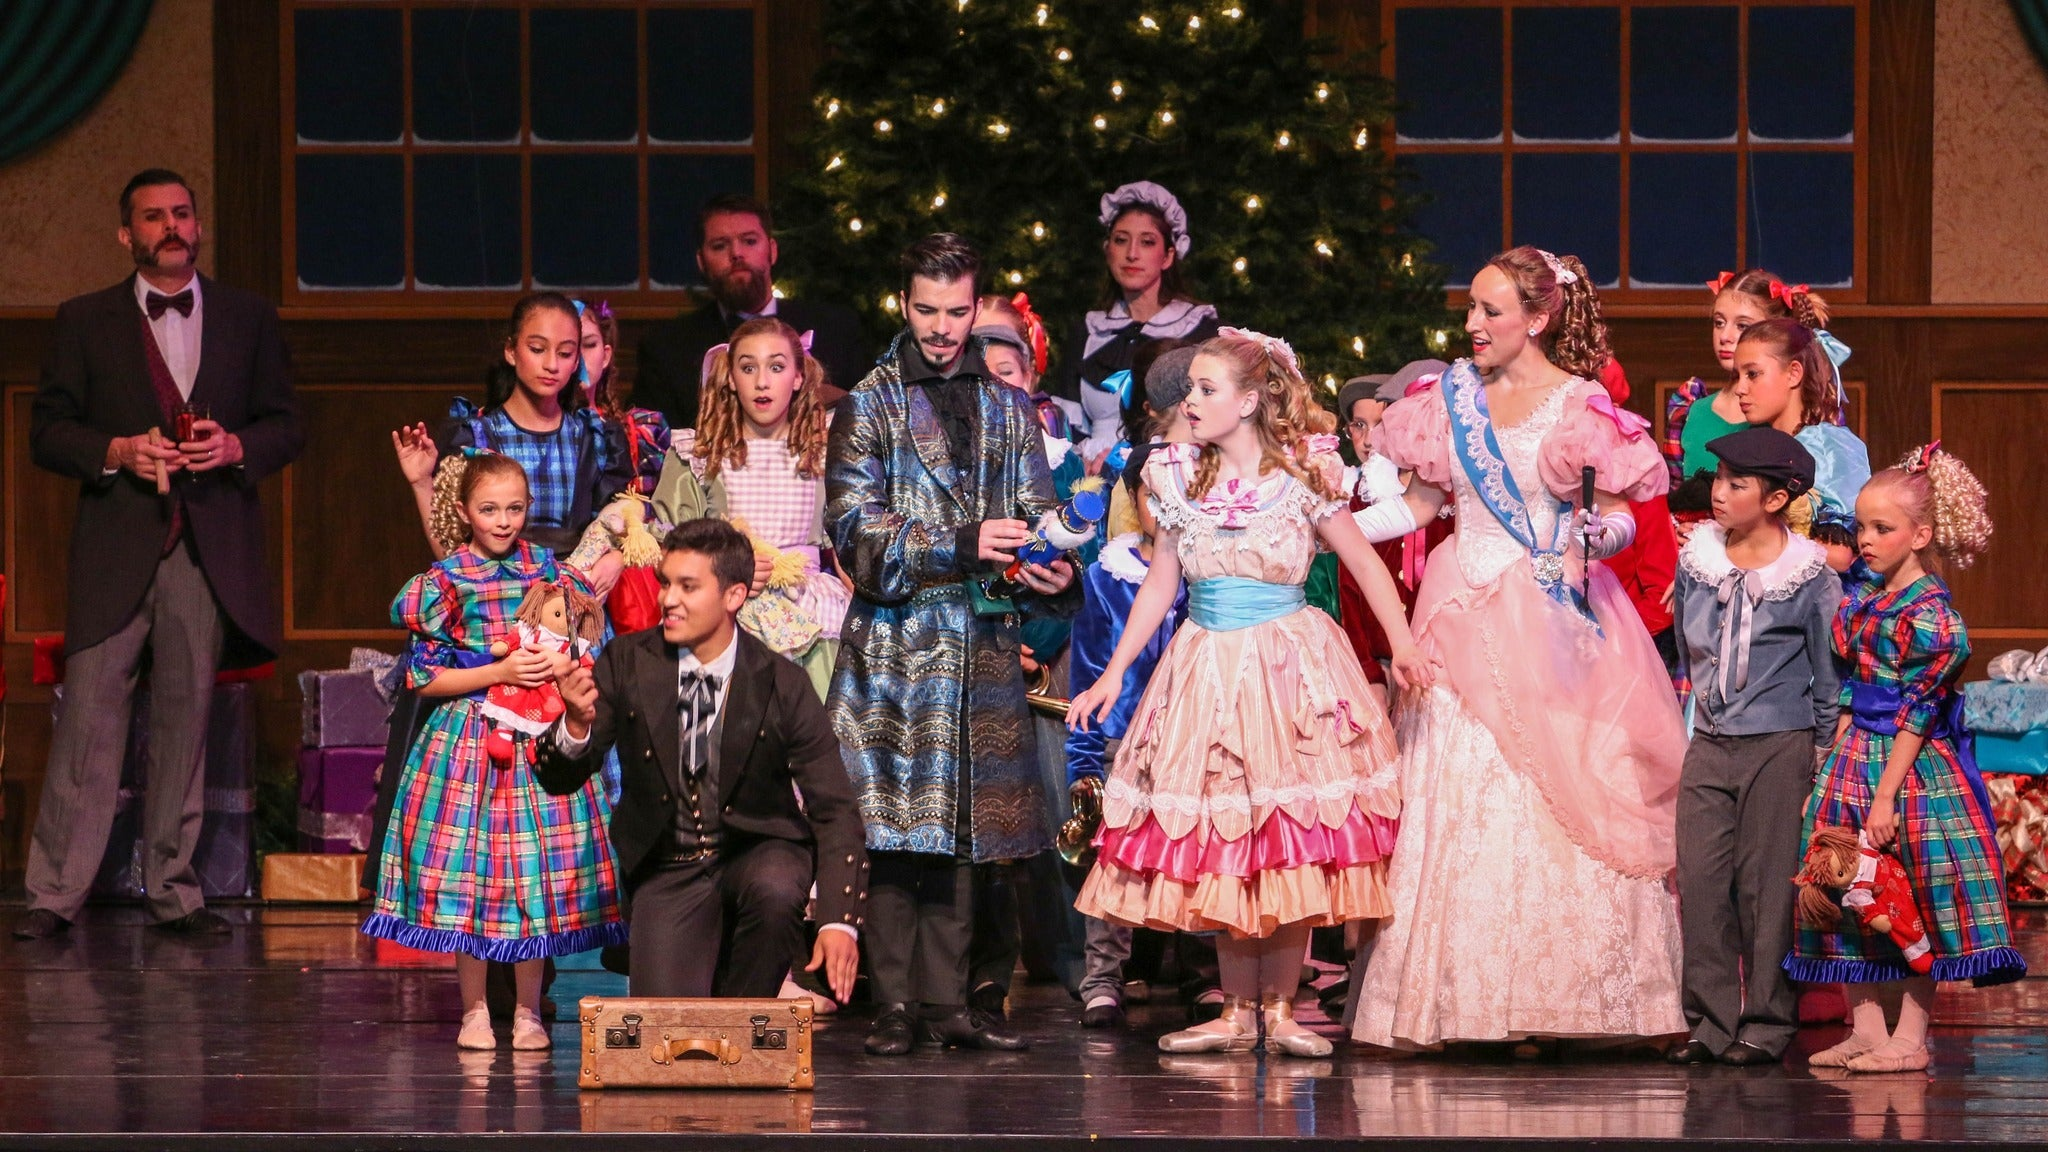 Los Gatos Ballet's Nutcracker at Flint Center - Cupertino, CA 95014